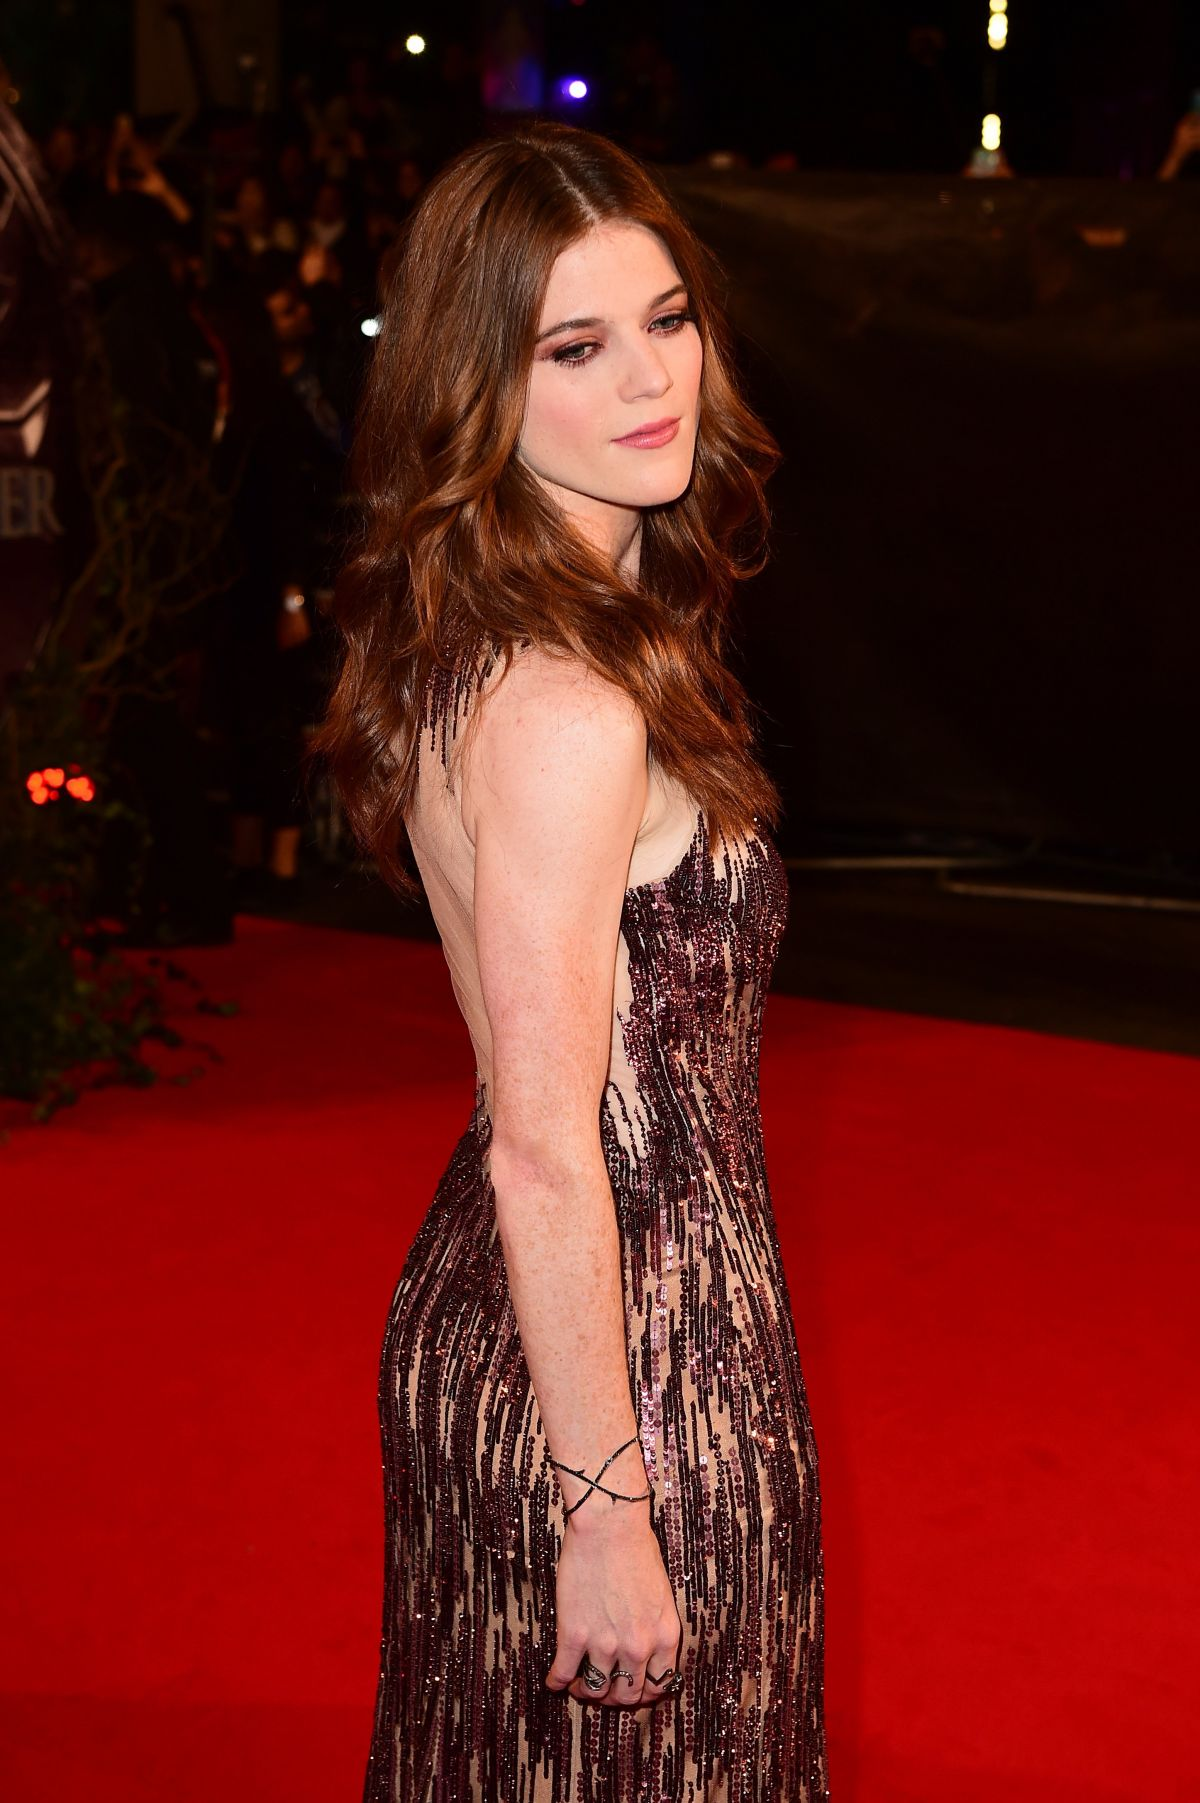 ROSE LESLIE at The Last Witch Hunter Premiere in London 10/19/2015